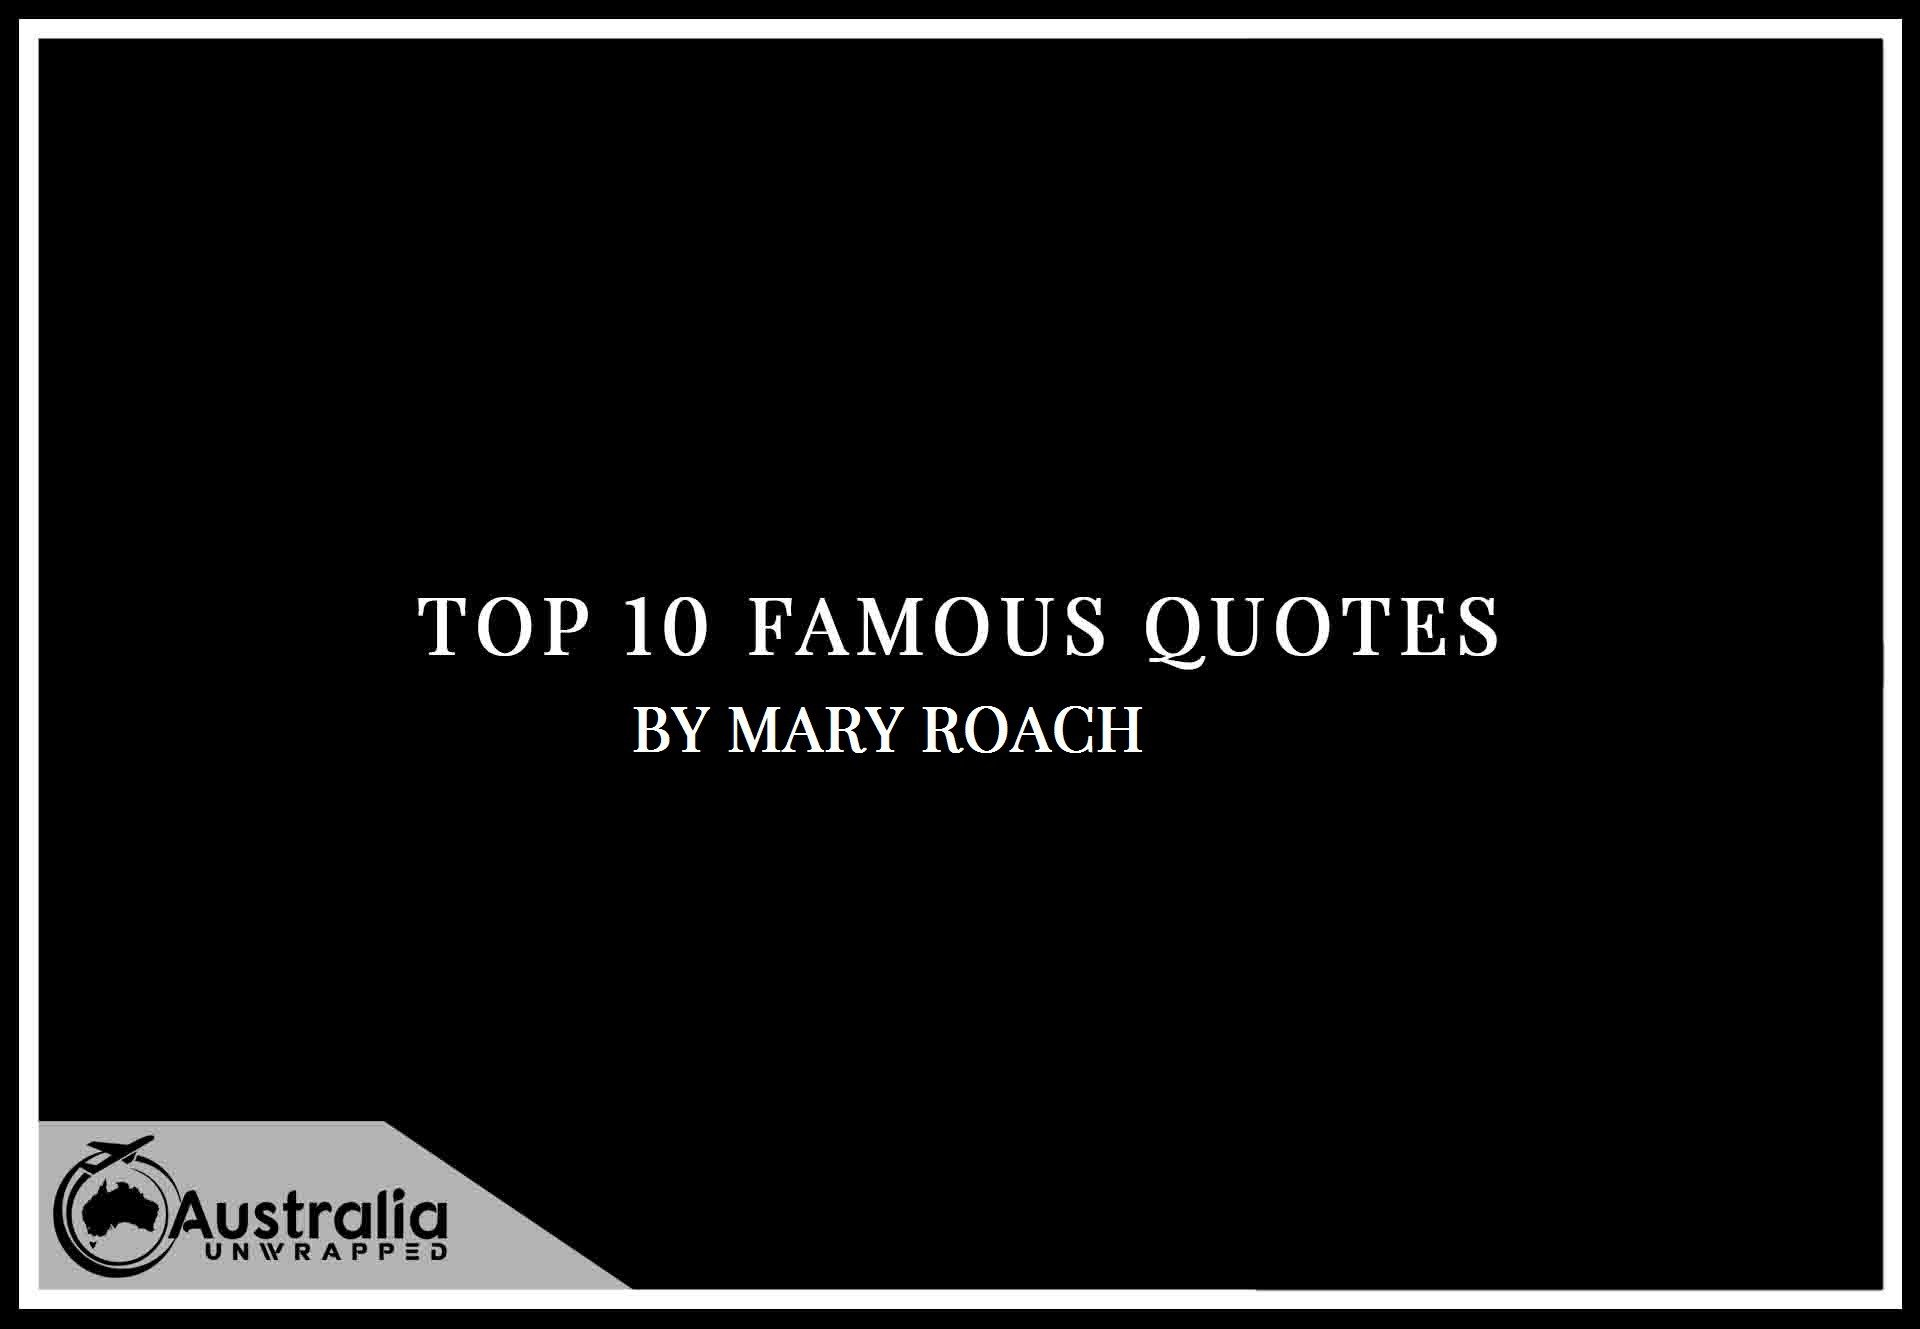 Mary Roach's Top 10 Popular and Famous Quotes